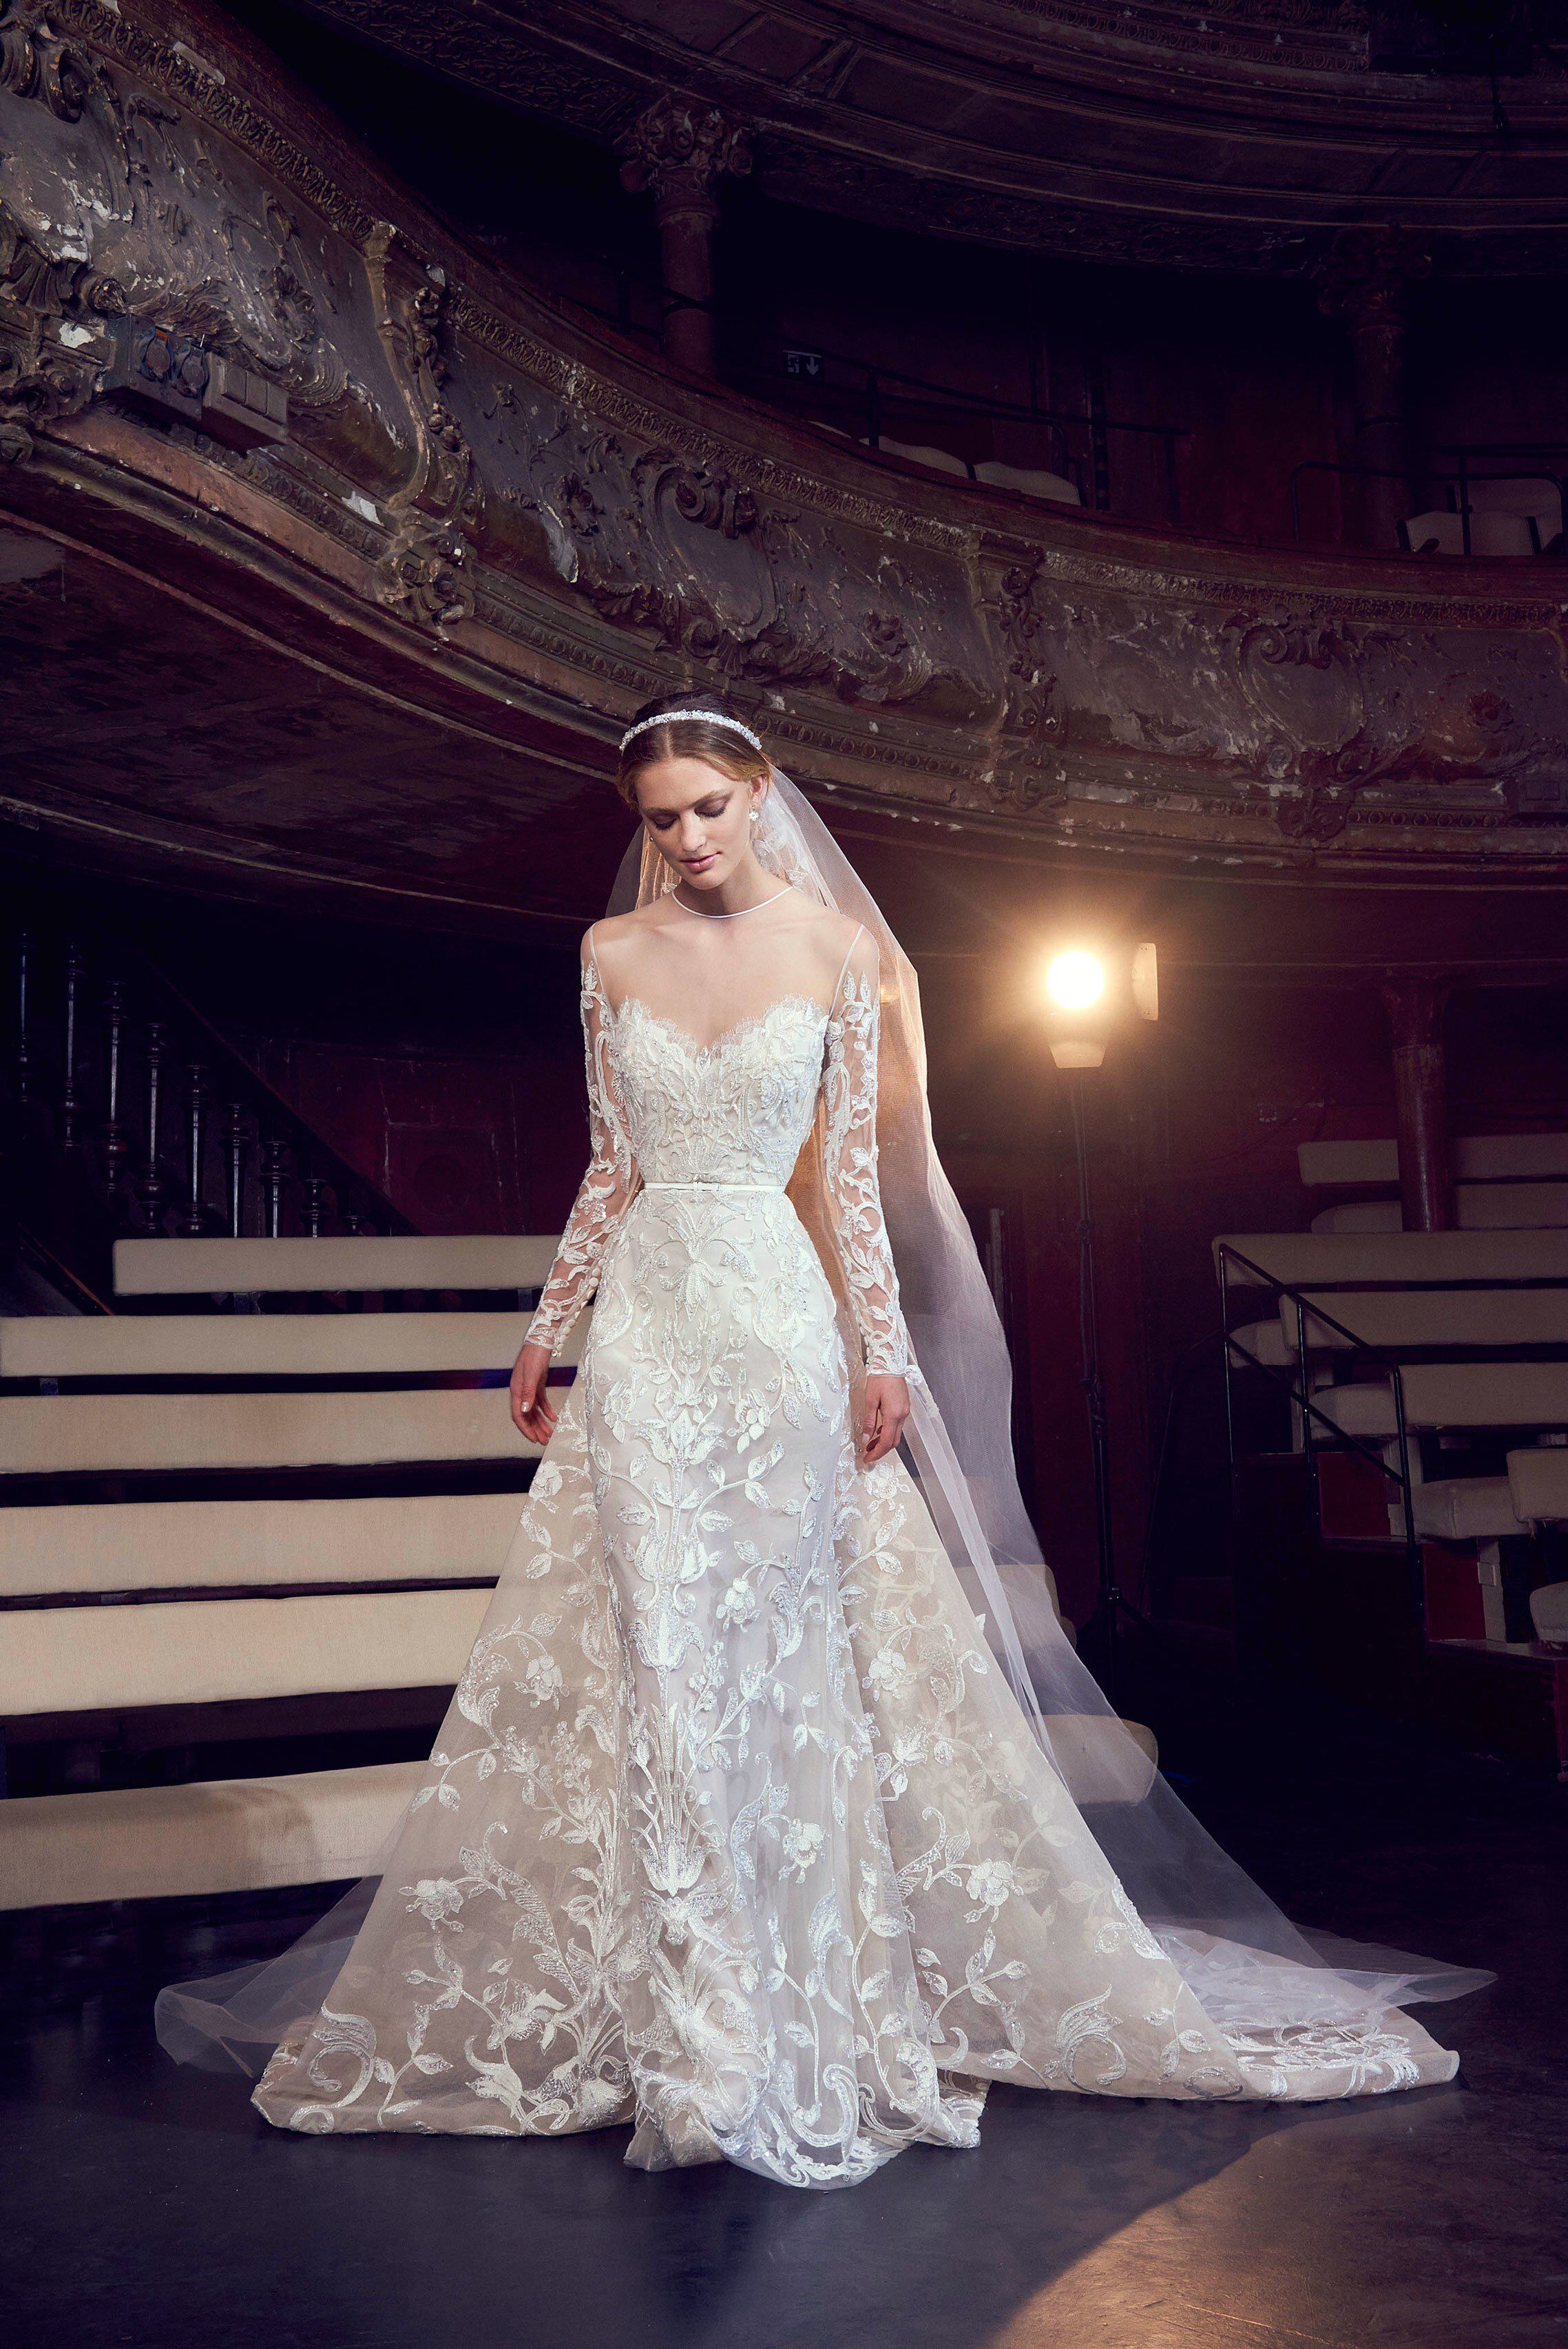 Elie Saab Bridal Fall 2018 Fashion Show | Elie saab bridal ...